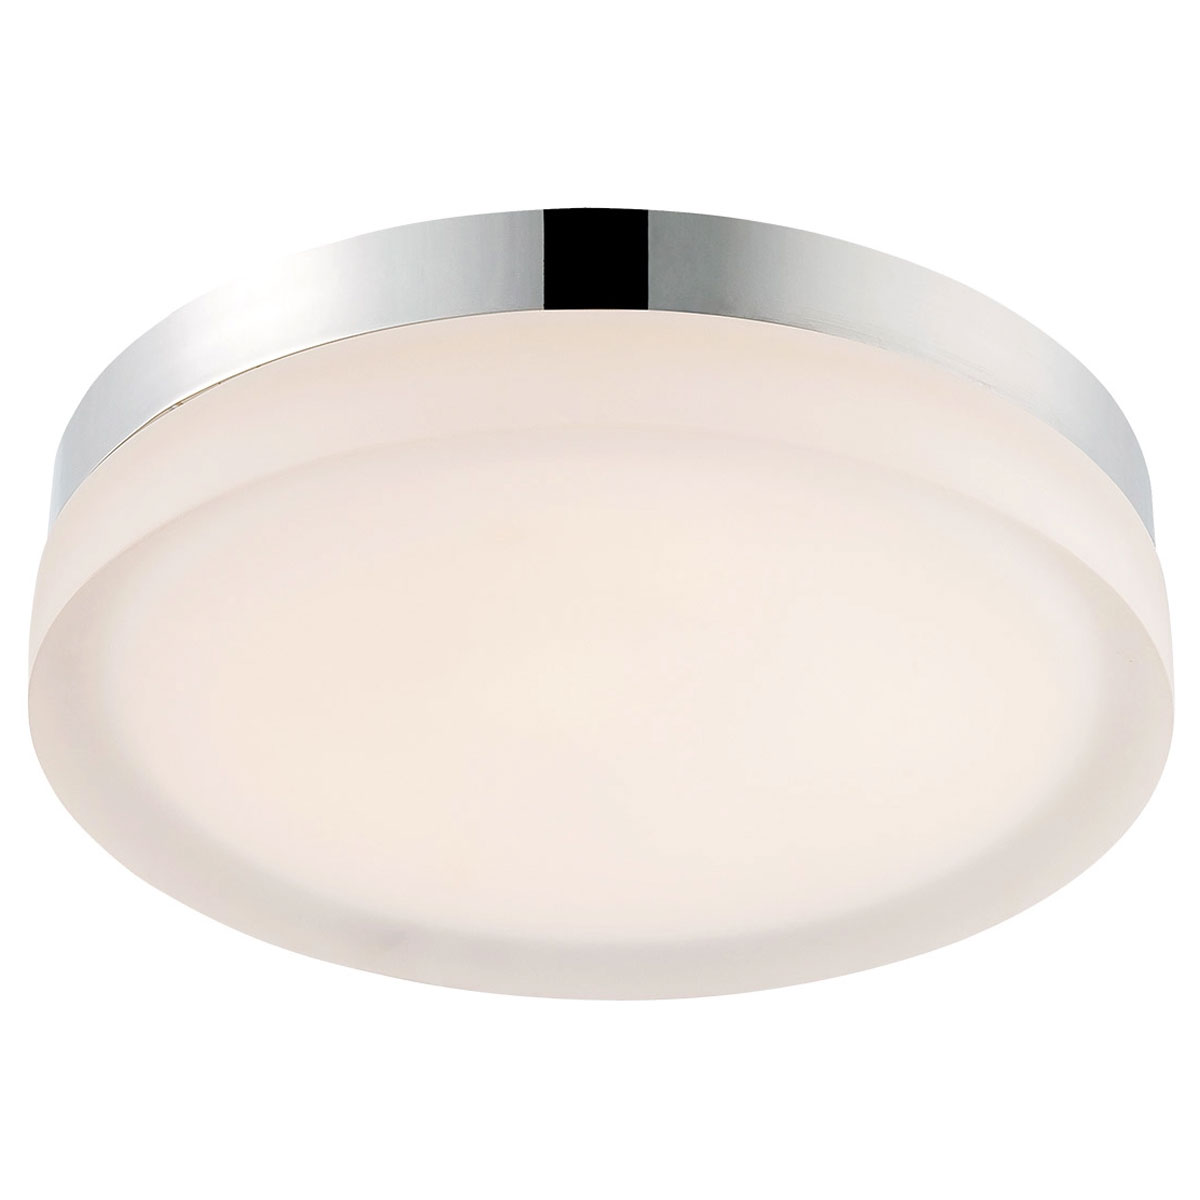 led ceiling light fixtures - slice round wallceiling light